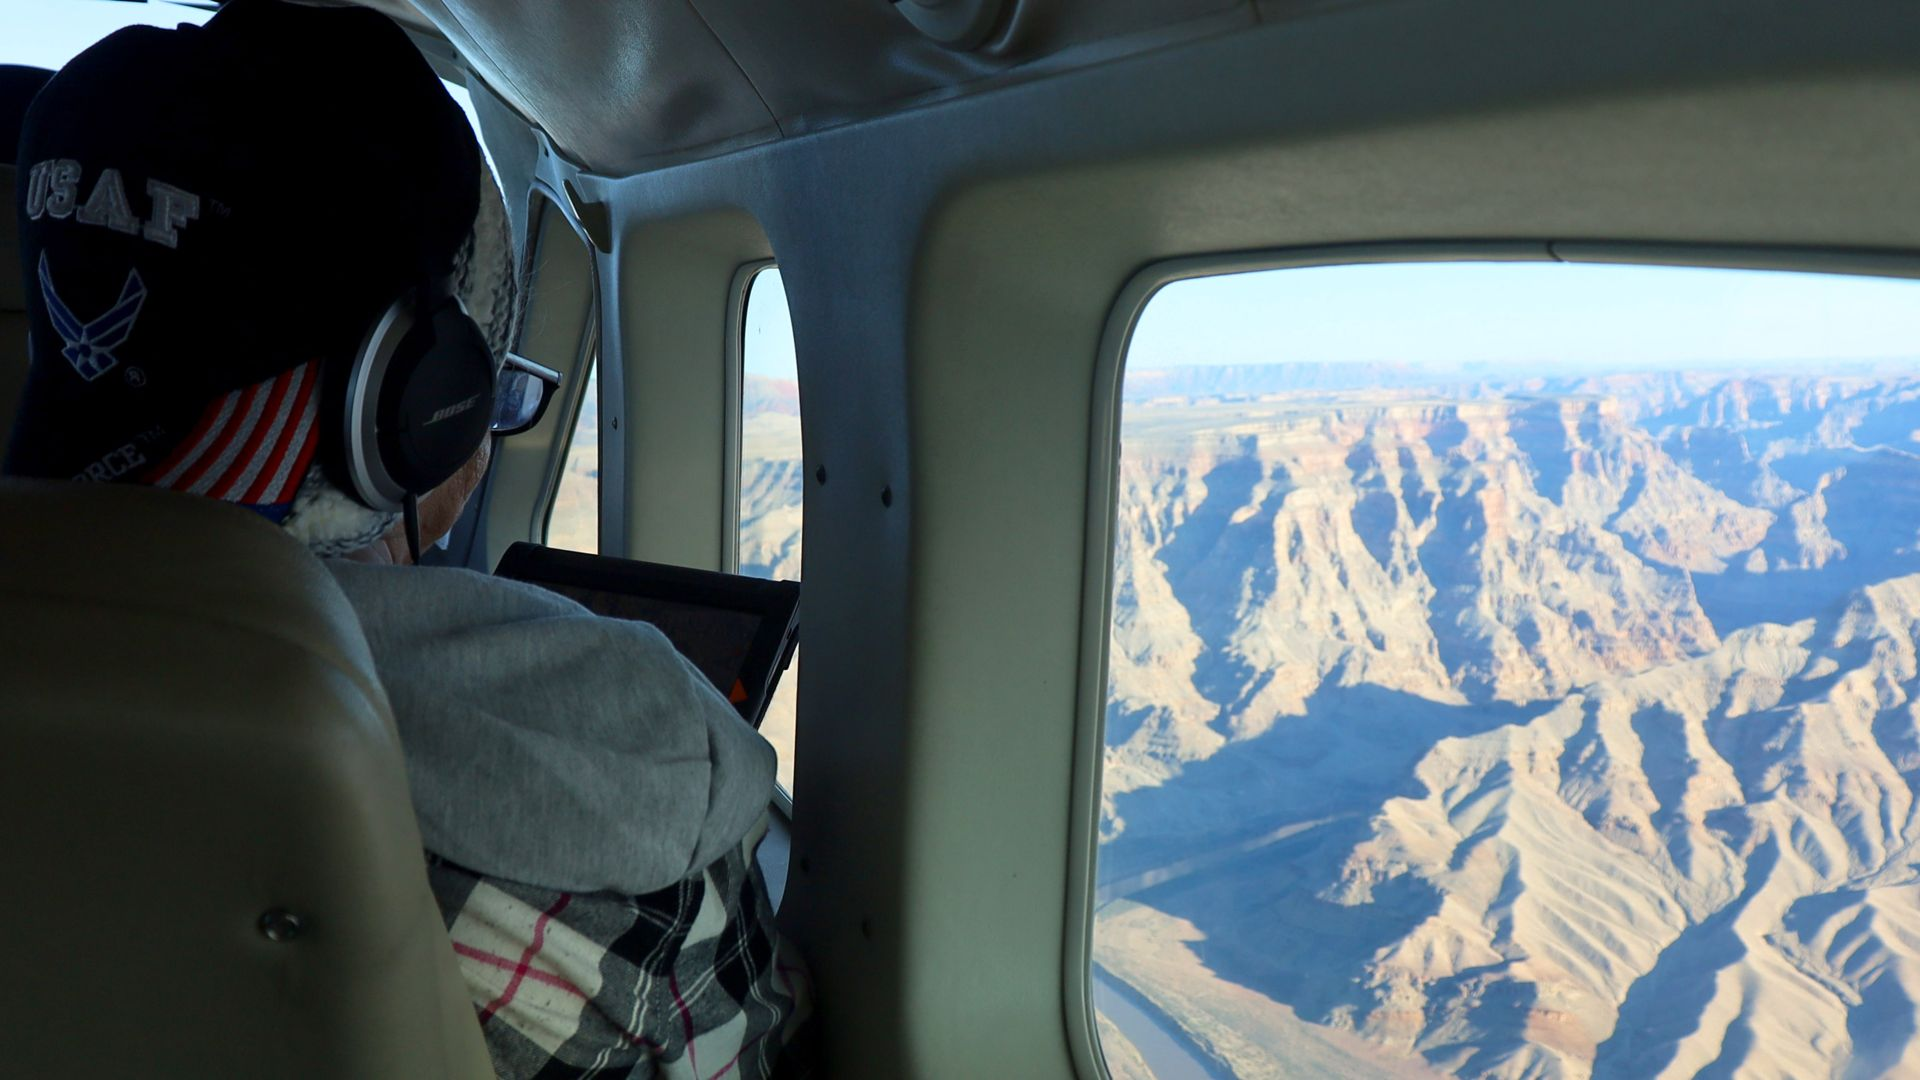 Grand Canyon from the inside of the airplane